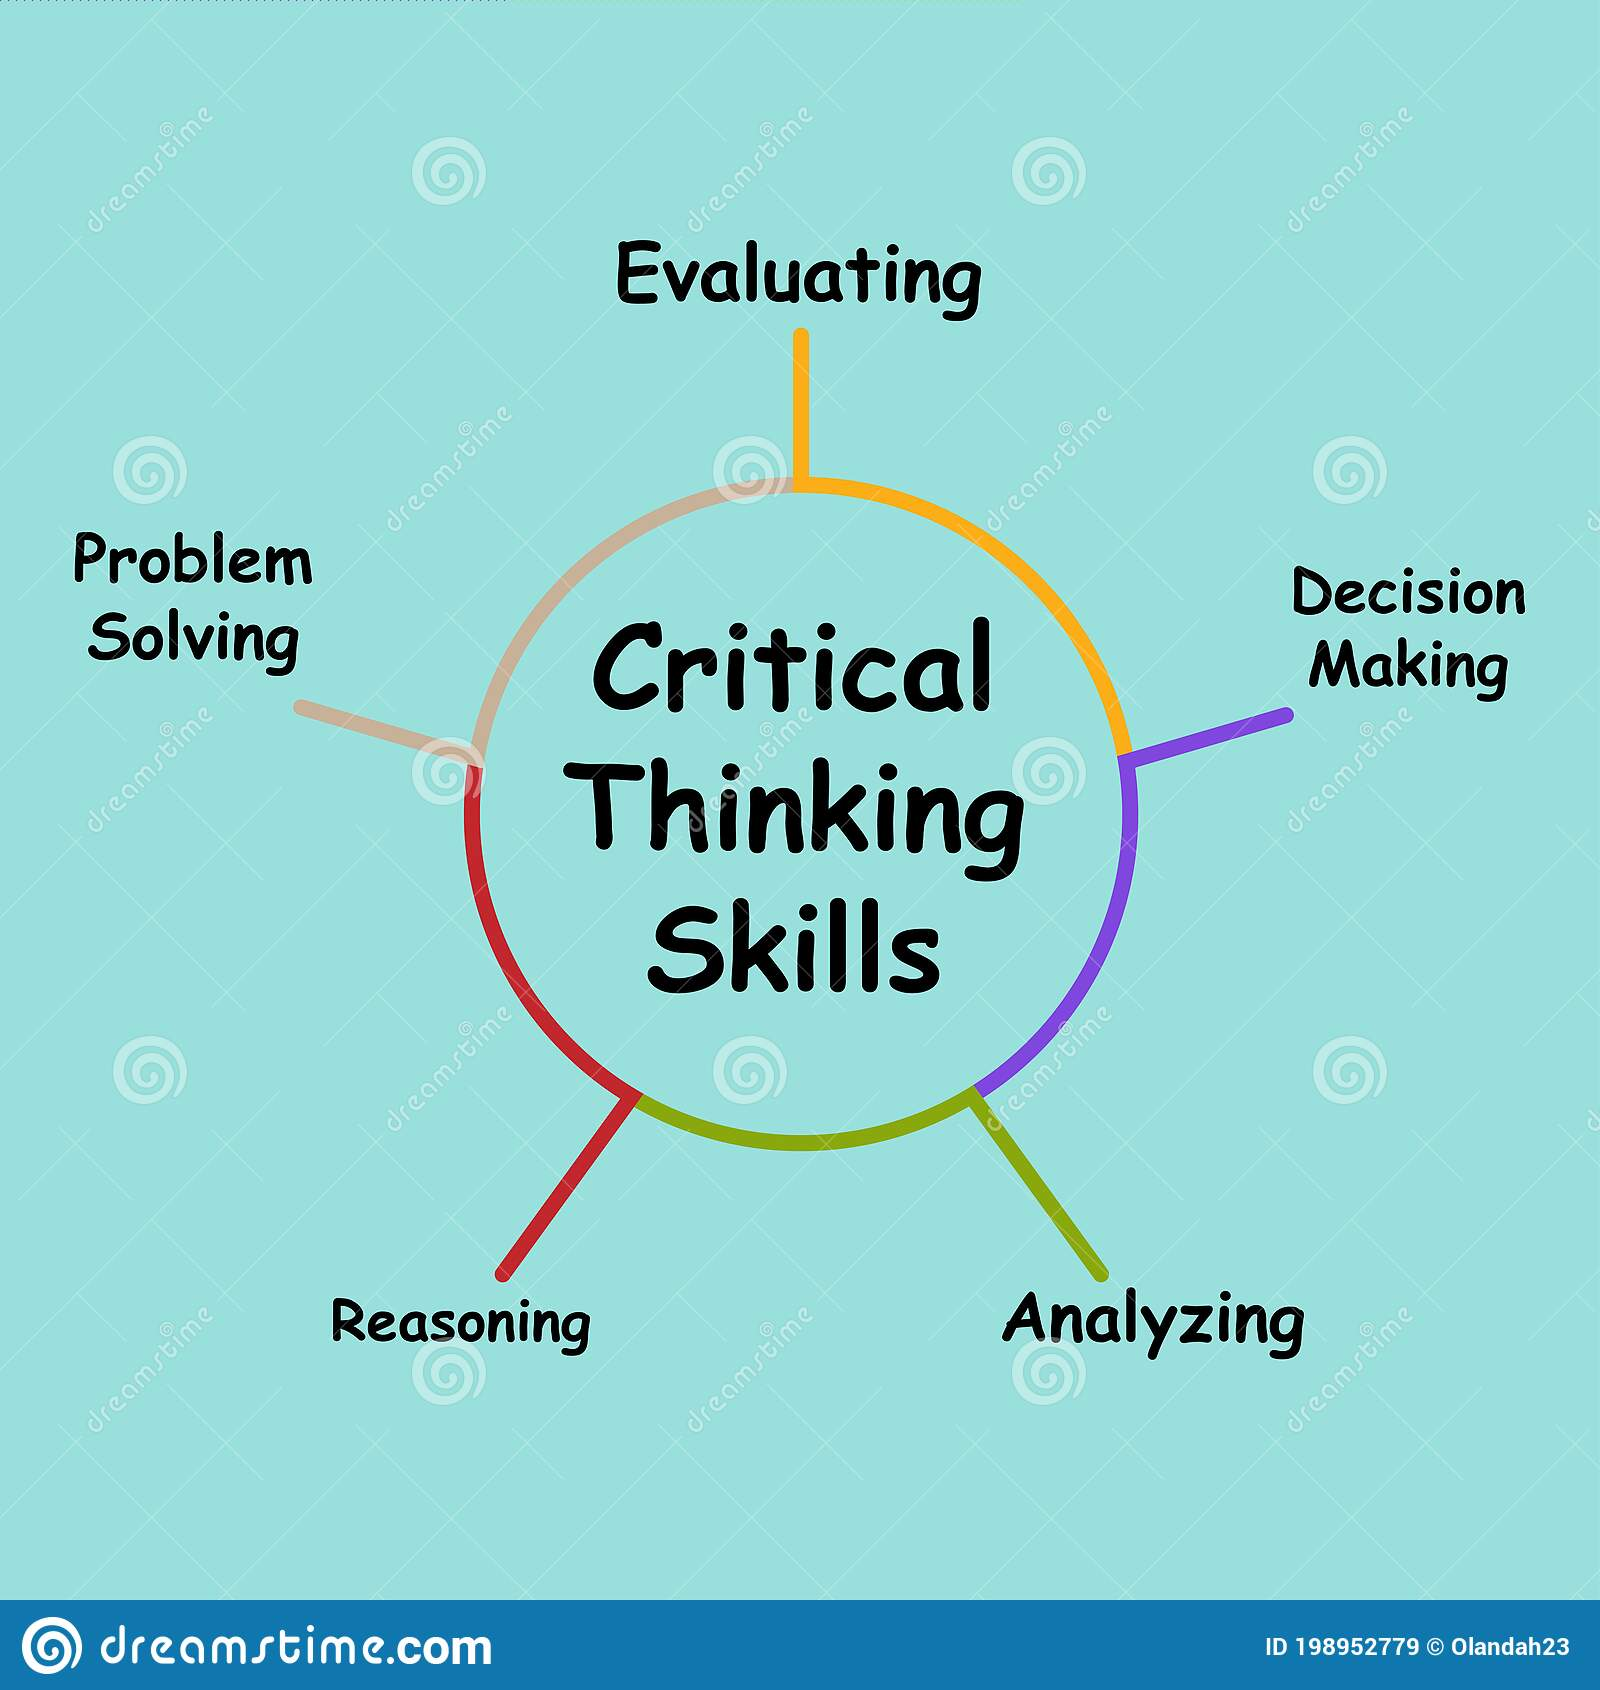 Diagram Of Critical Thinking Skills With Keywords. EPS 10 Stock Vector - Illustration of evaluating, aspirations: 198952779